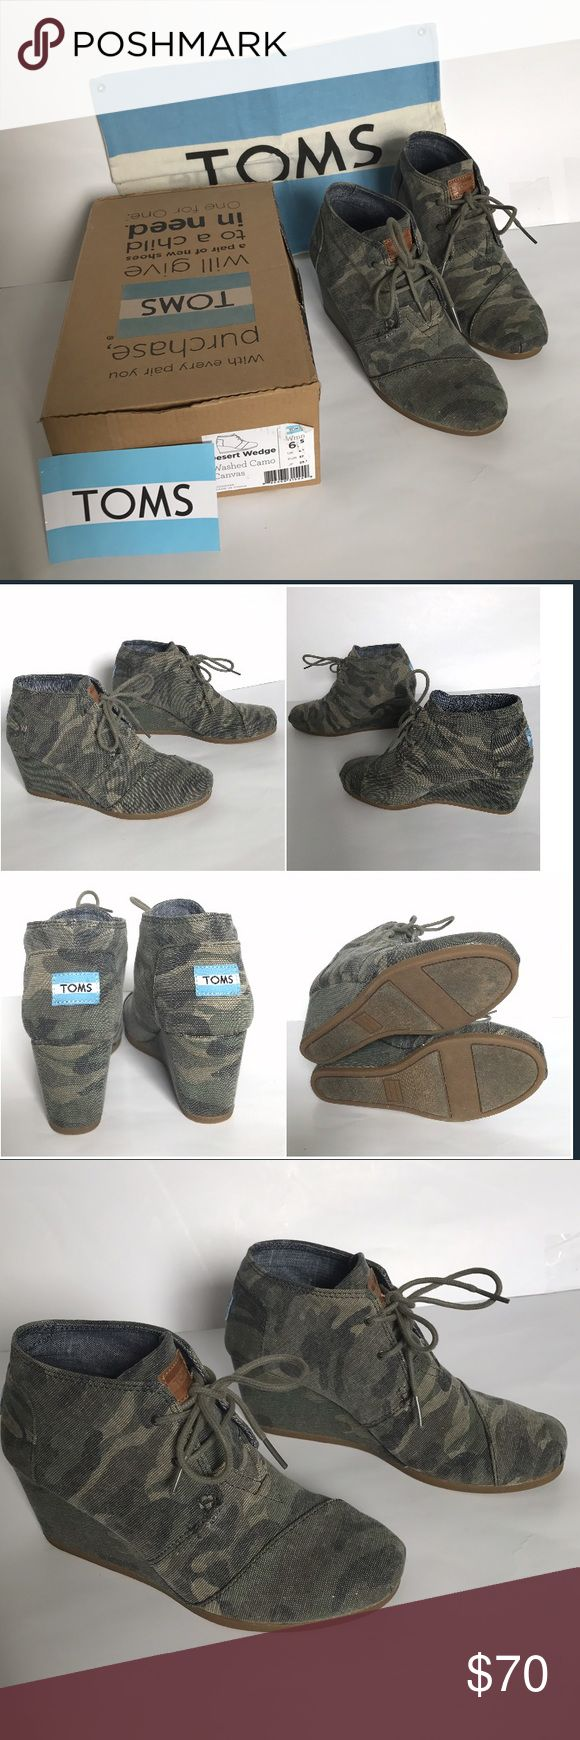 NIB desert wedge camo toms Size 6.5 I have worn these once but as you can tell from photos there's no sign of wear. Shoes come with sticker, dust bag, and box! ♥️. **not brand new, have been worn once before** TOMS Shoes Ankle Boots & Booties